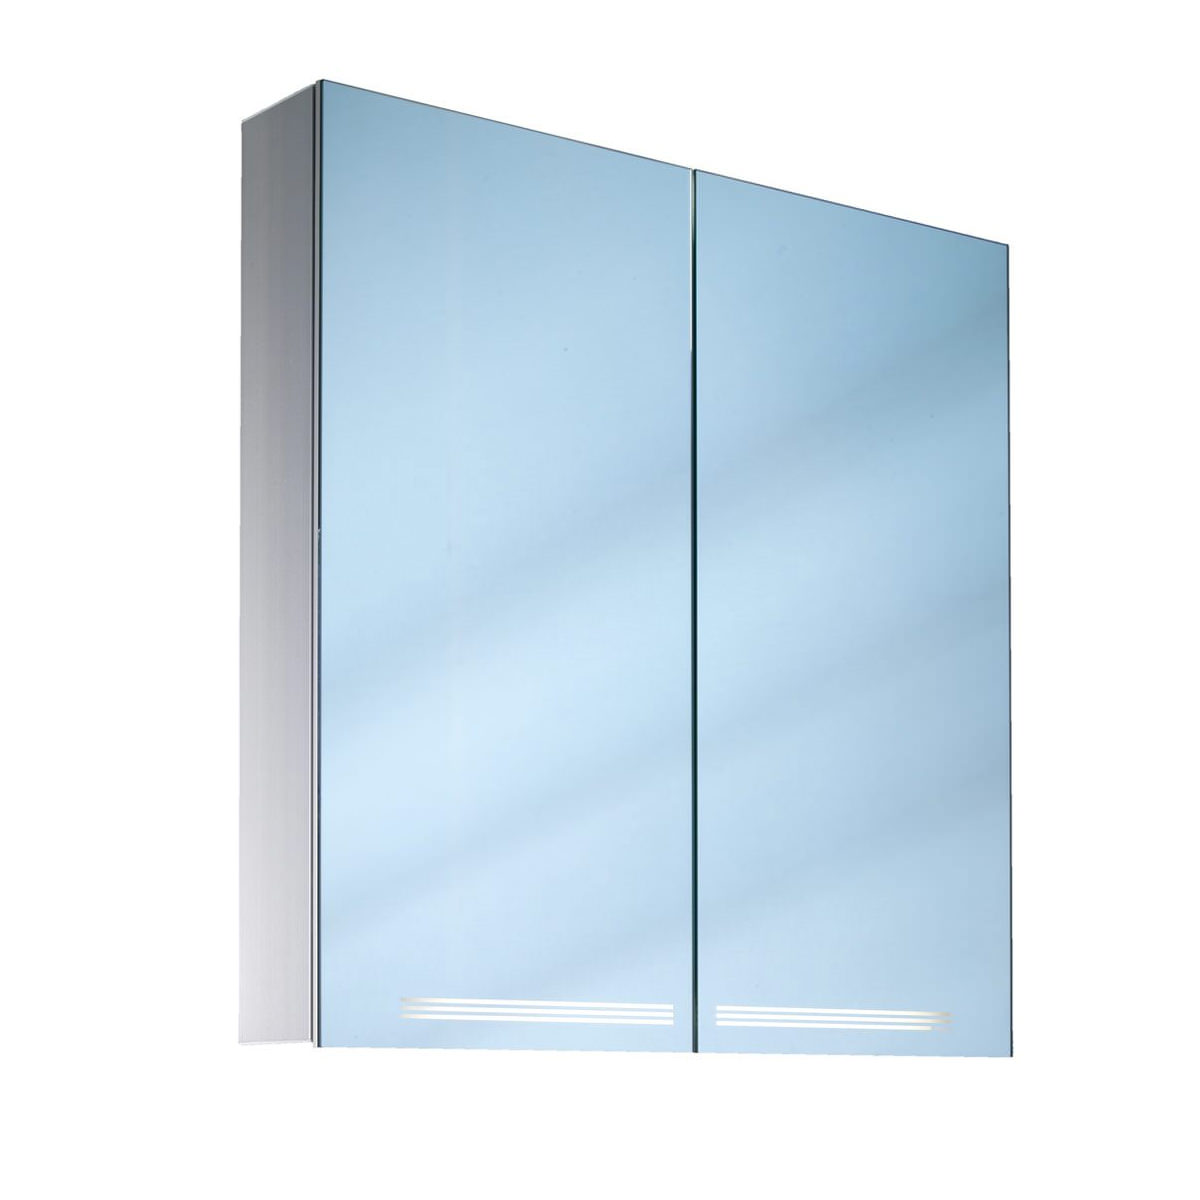 Schneider Graceline 2 Door Mirror Cabinet With Led Light